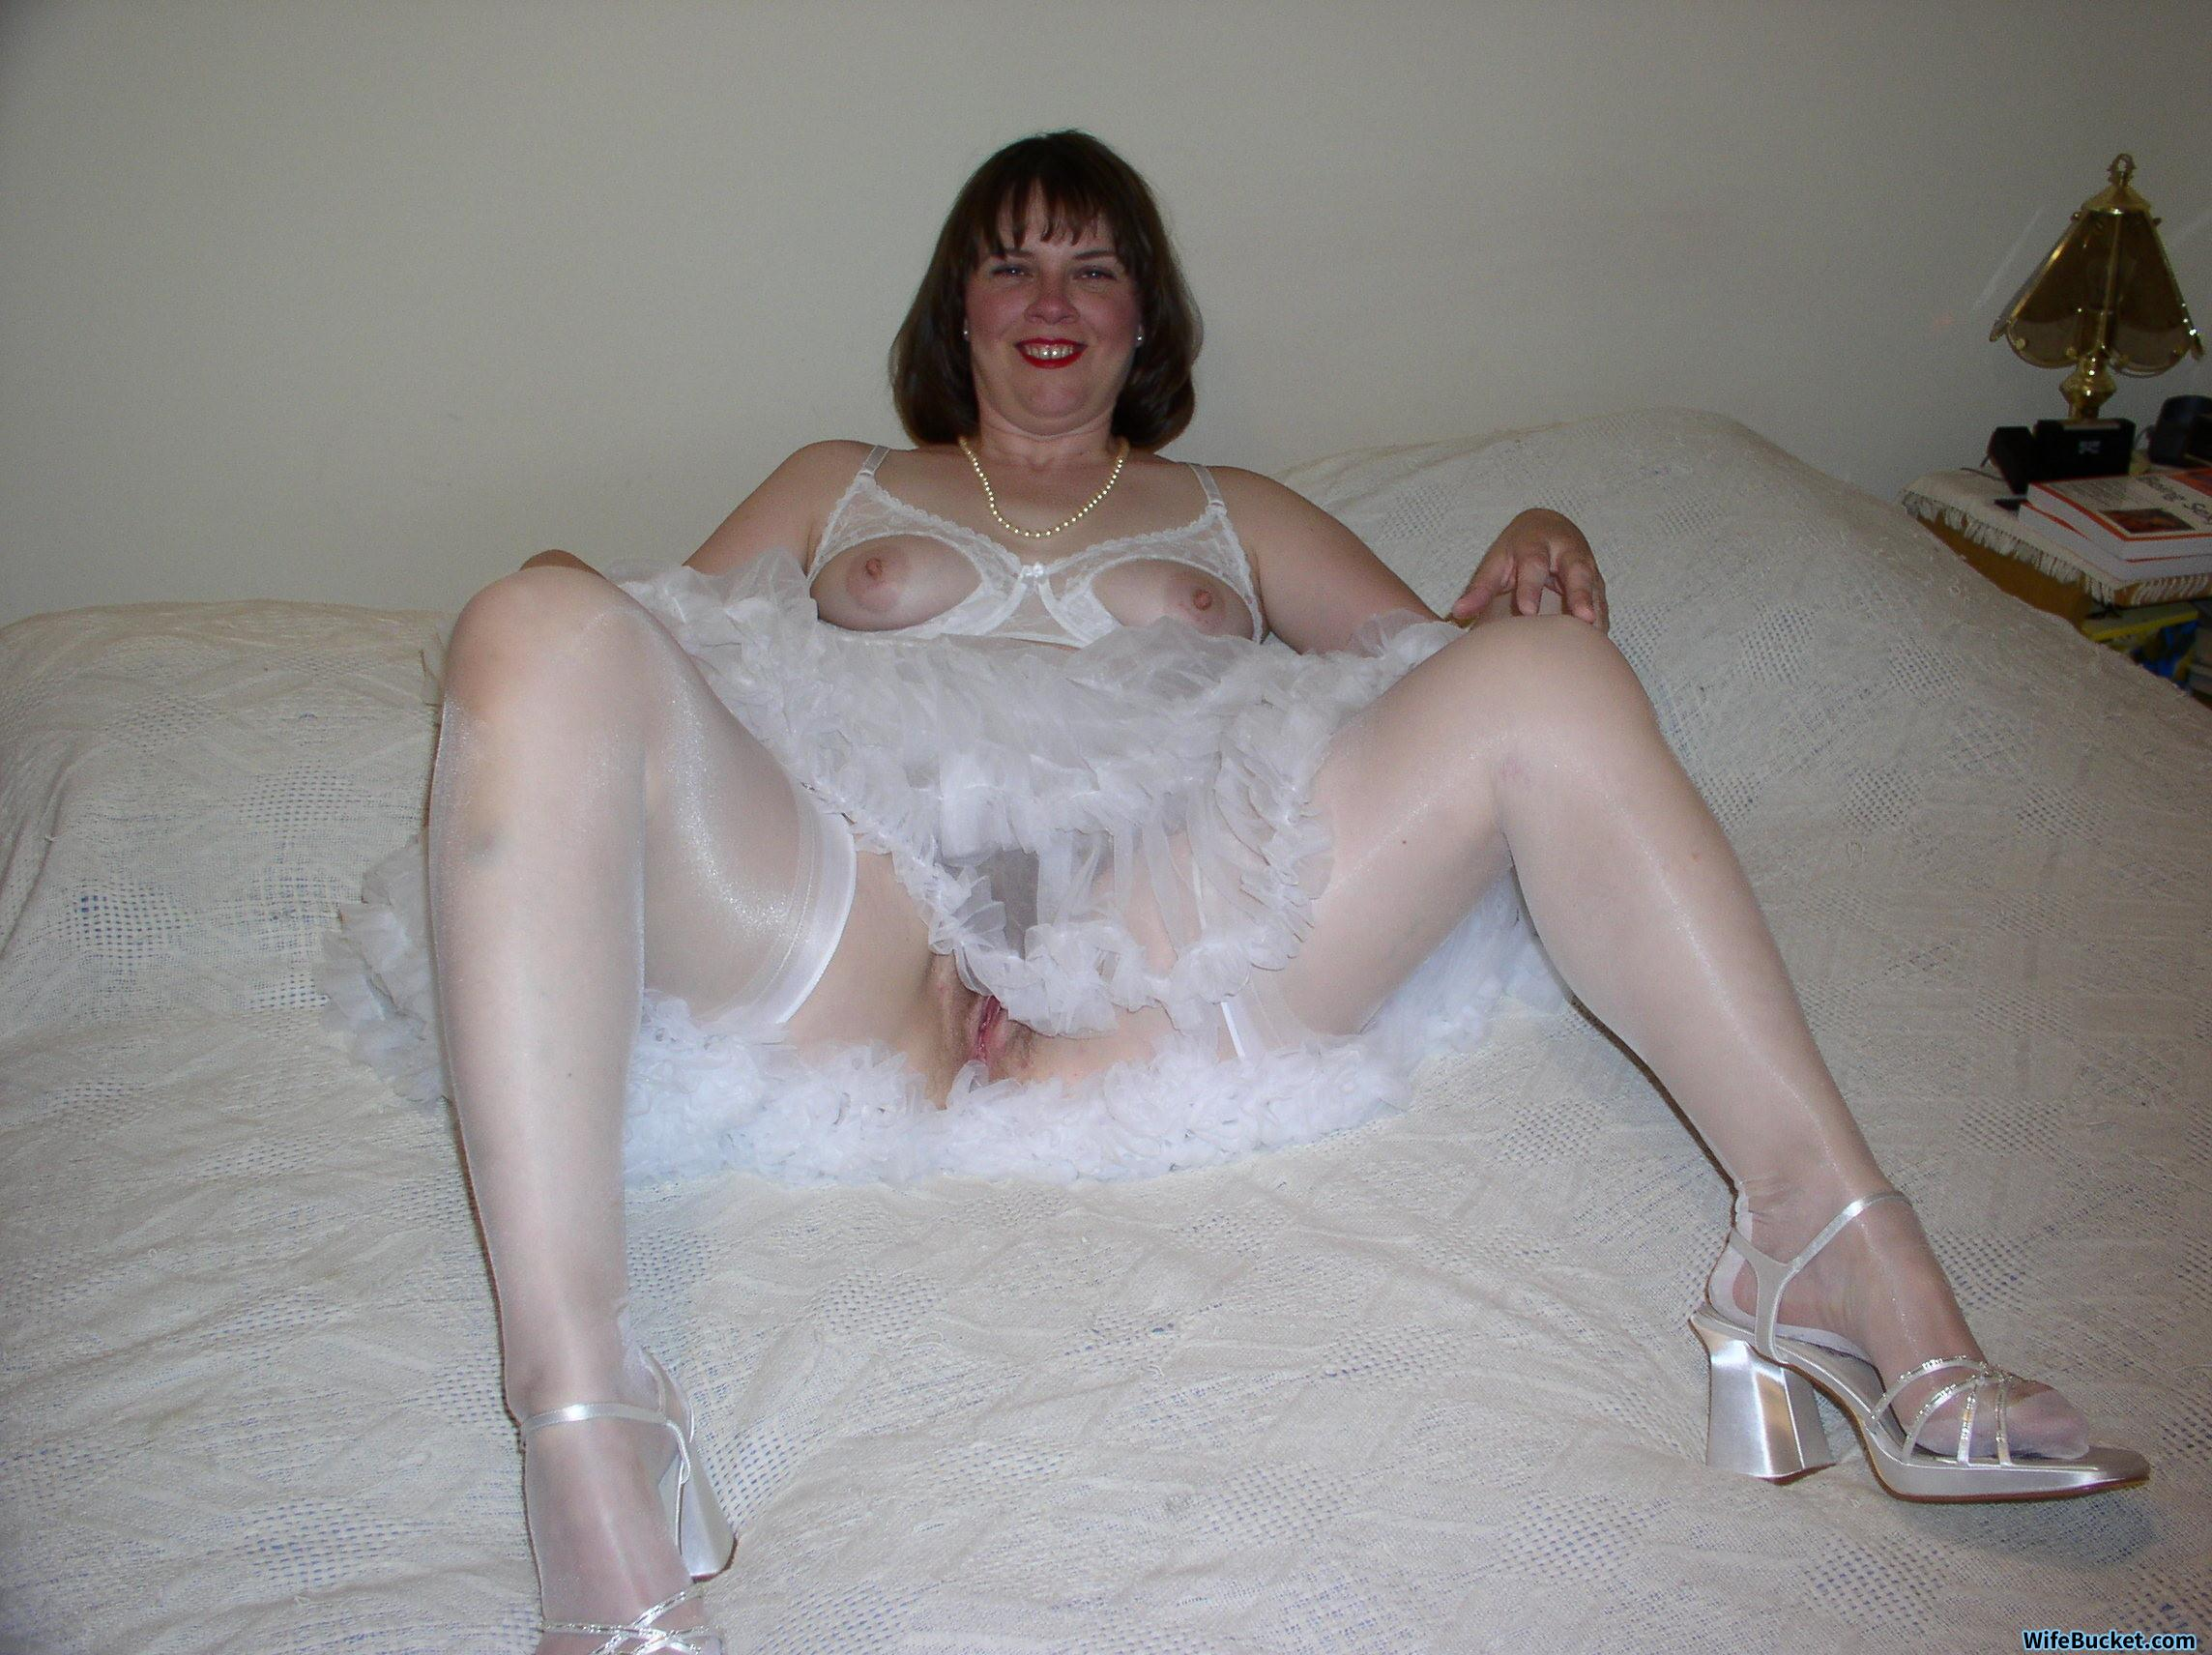 Bride wife milf nude photos